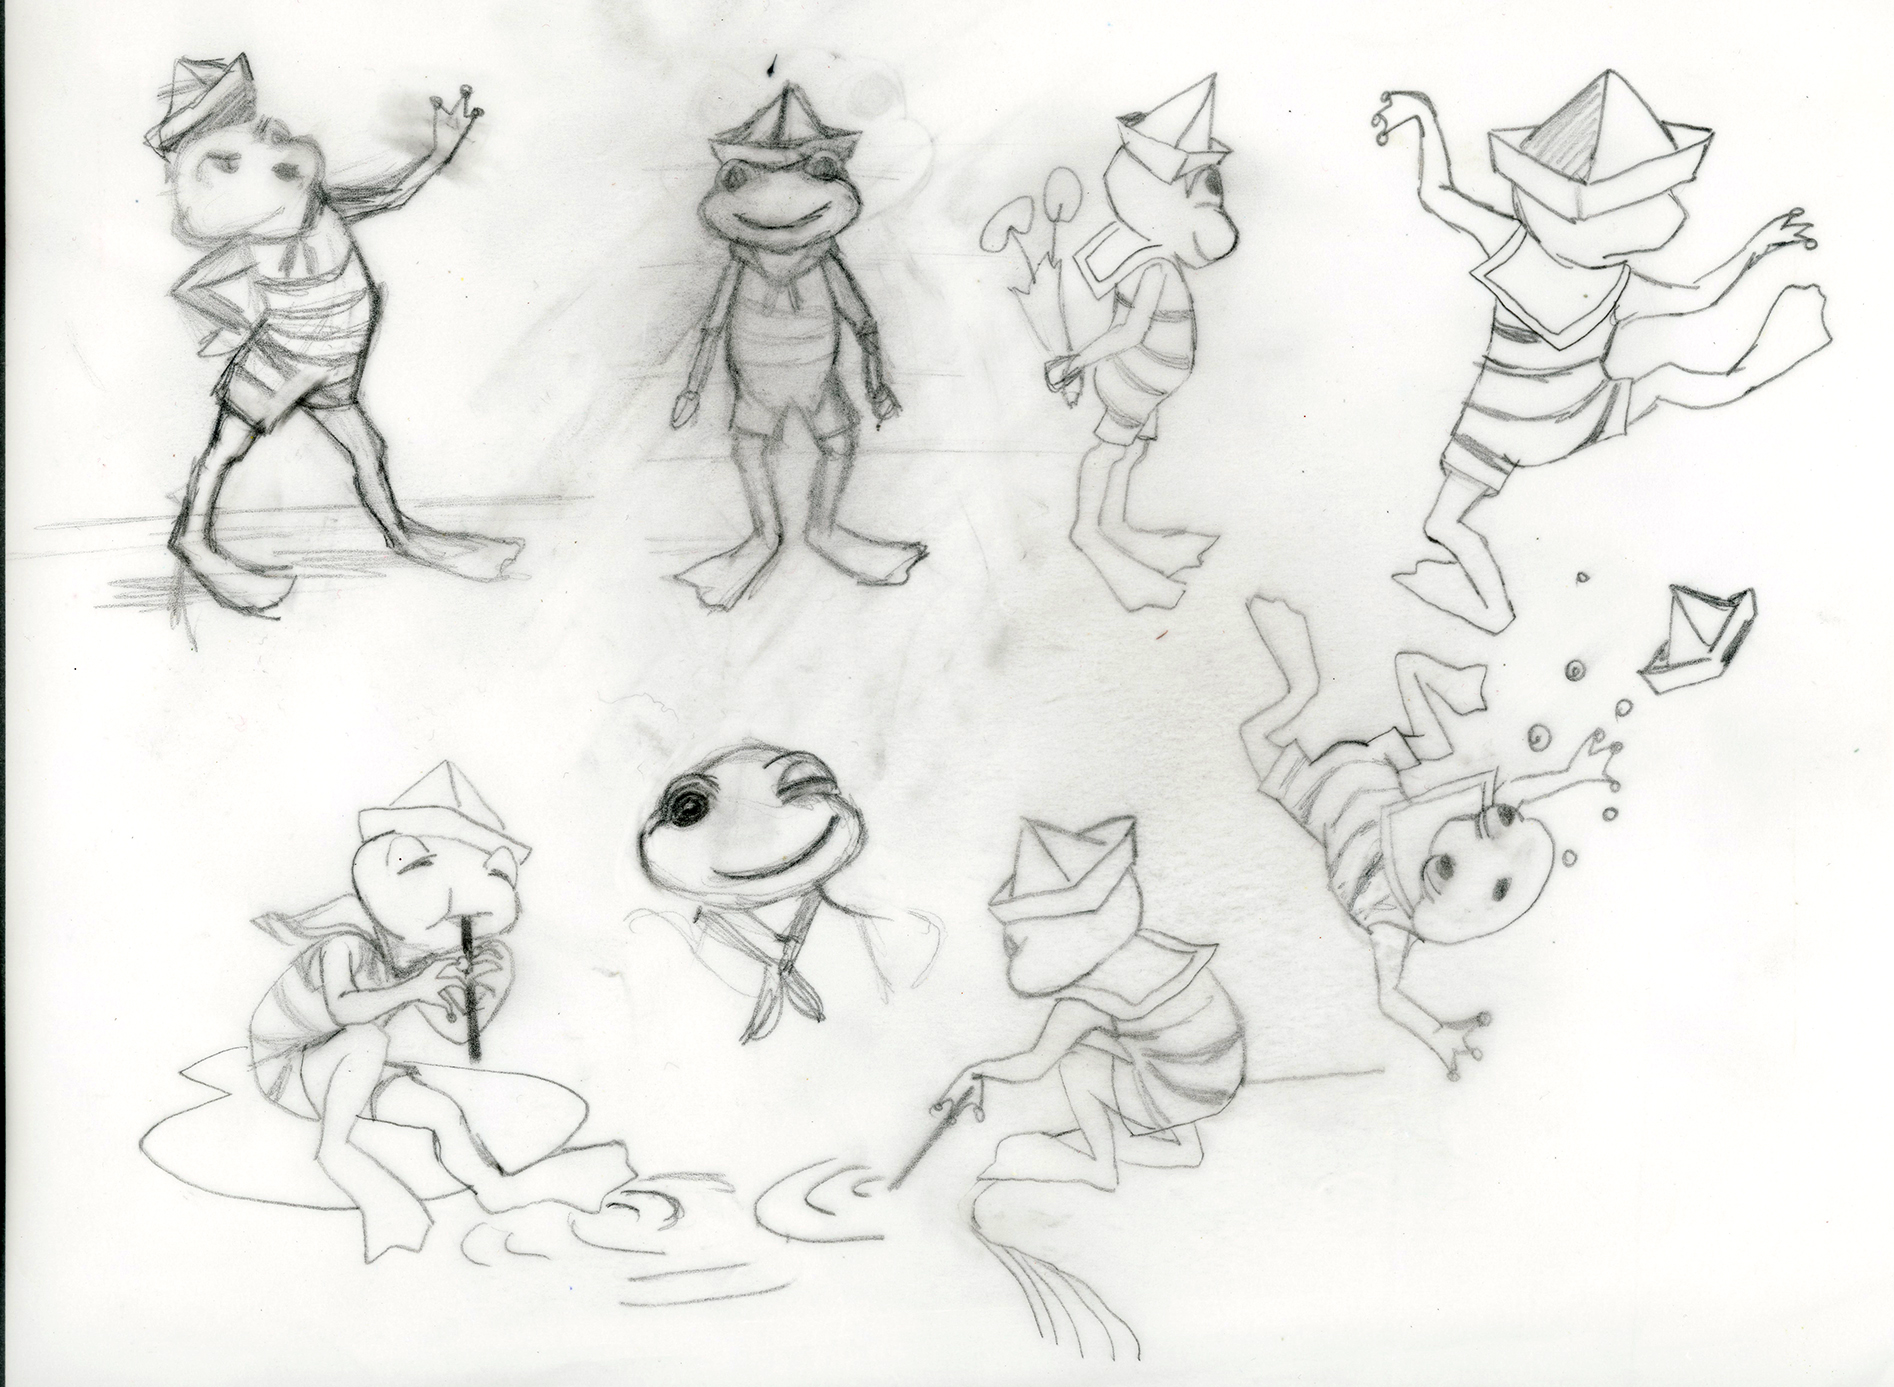 little frog character sheet svs.jpg